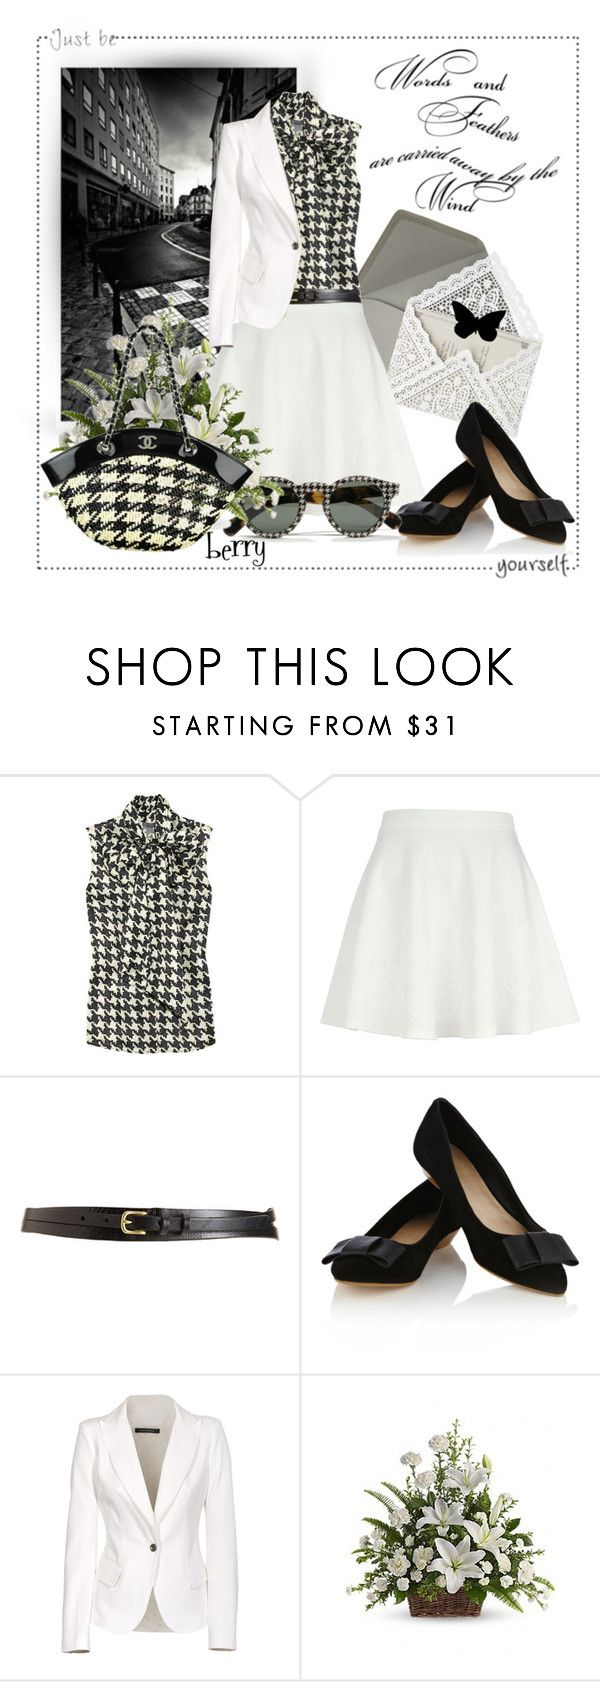 """""""Checkered Past?"""" by berry1975 ❤ liked on Polyvore featuring Roxy, Martha Stewart, Alexander McQueen, River Island, rag & bone, Oasis, Plein Sud Jeanius, Ralph Lauren and Chanel"""